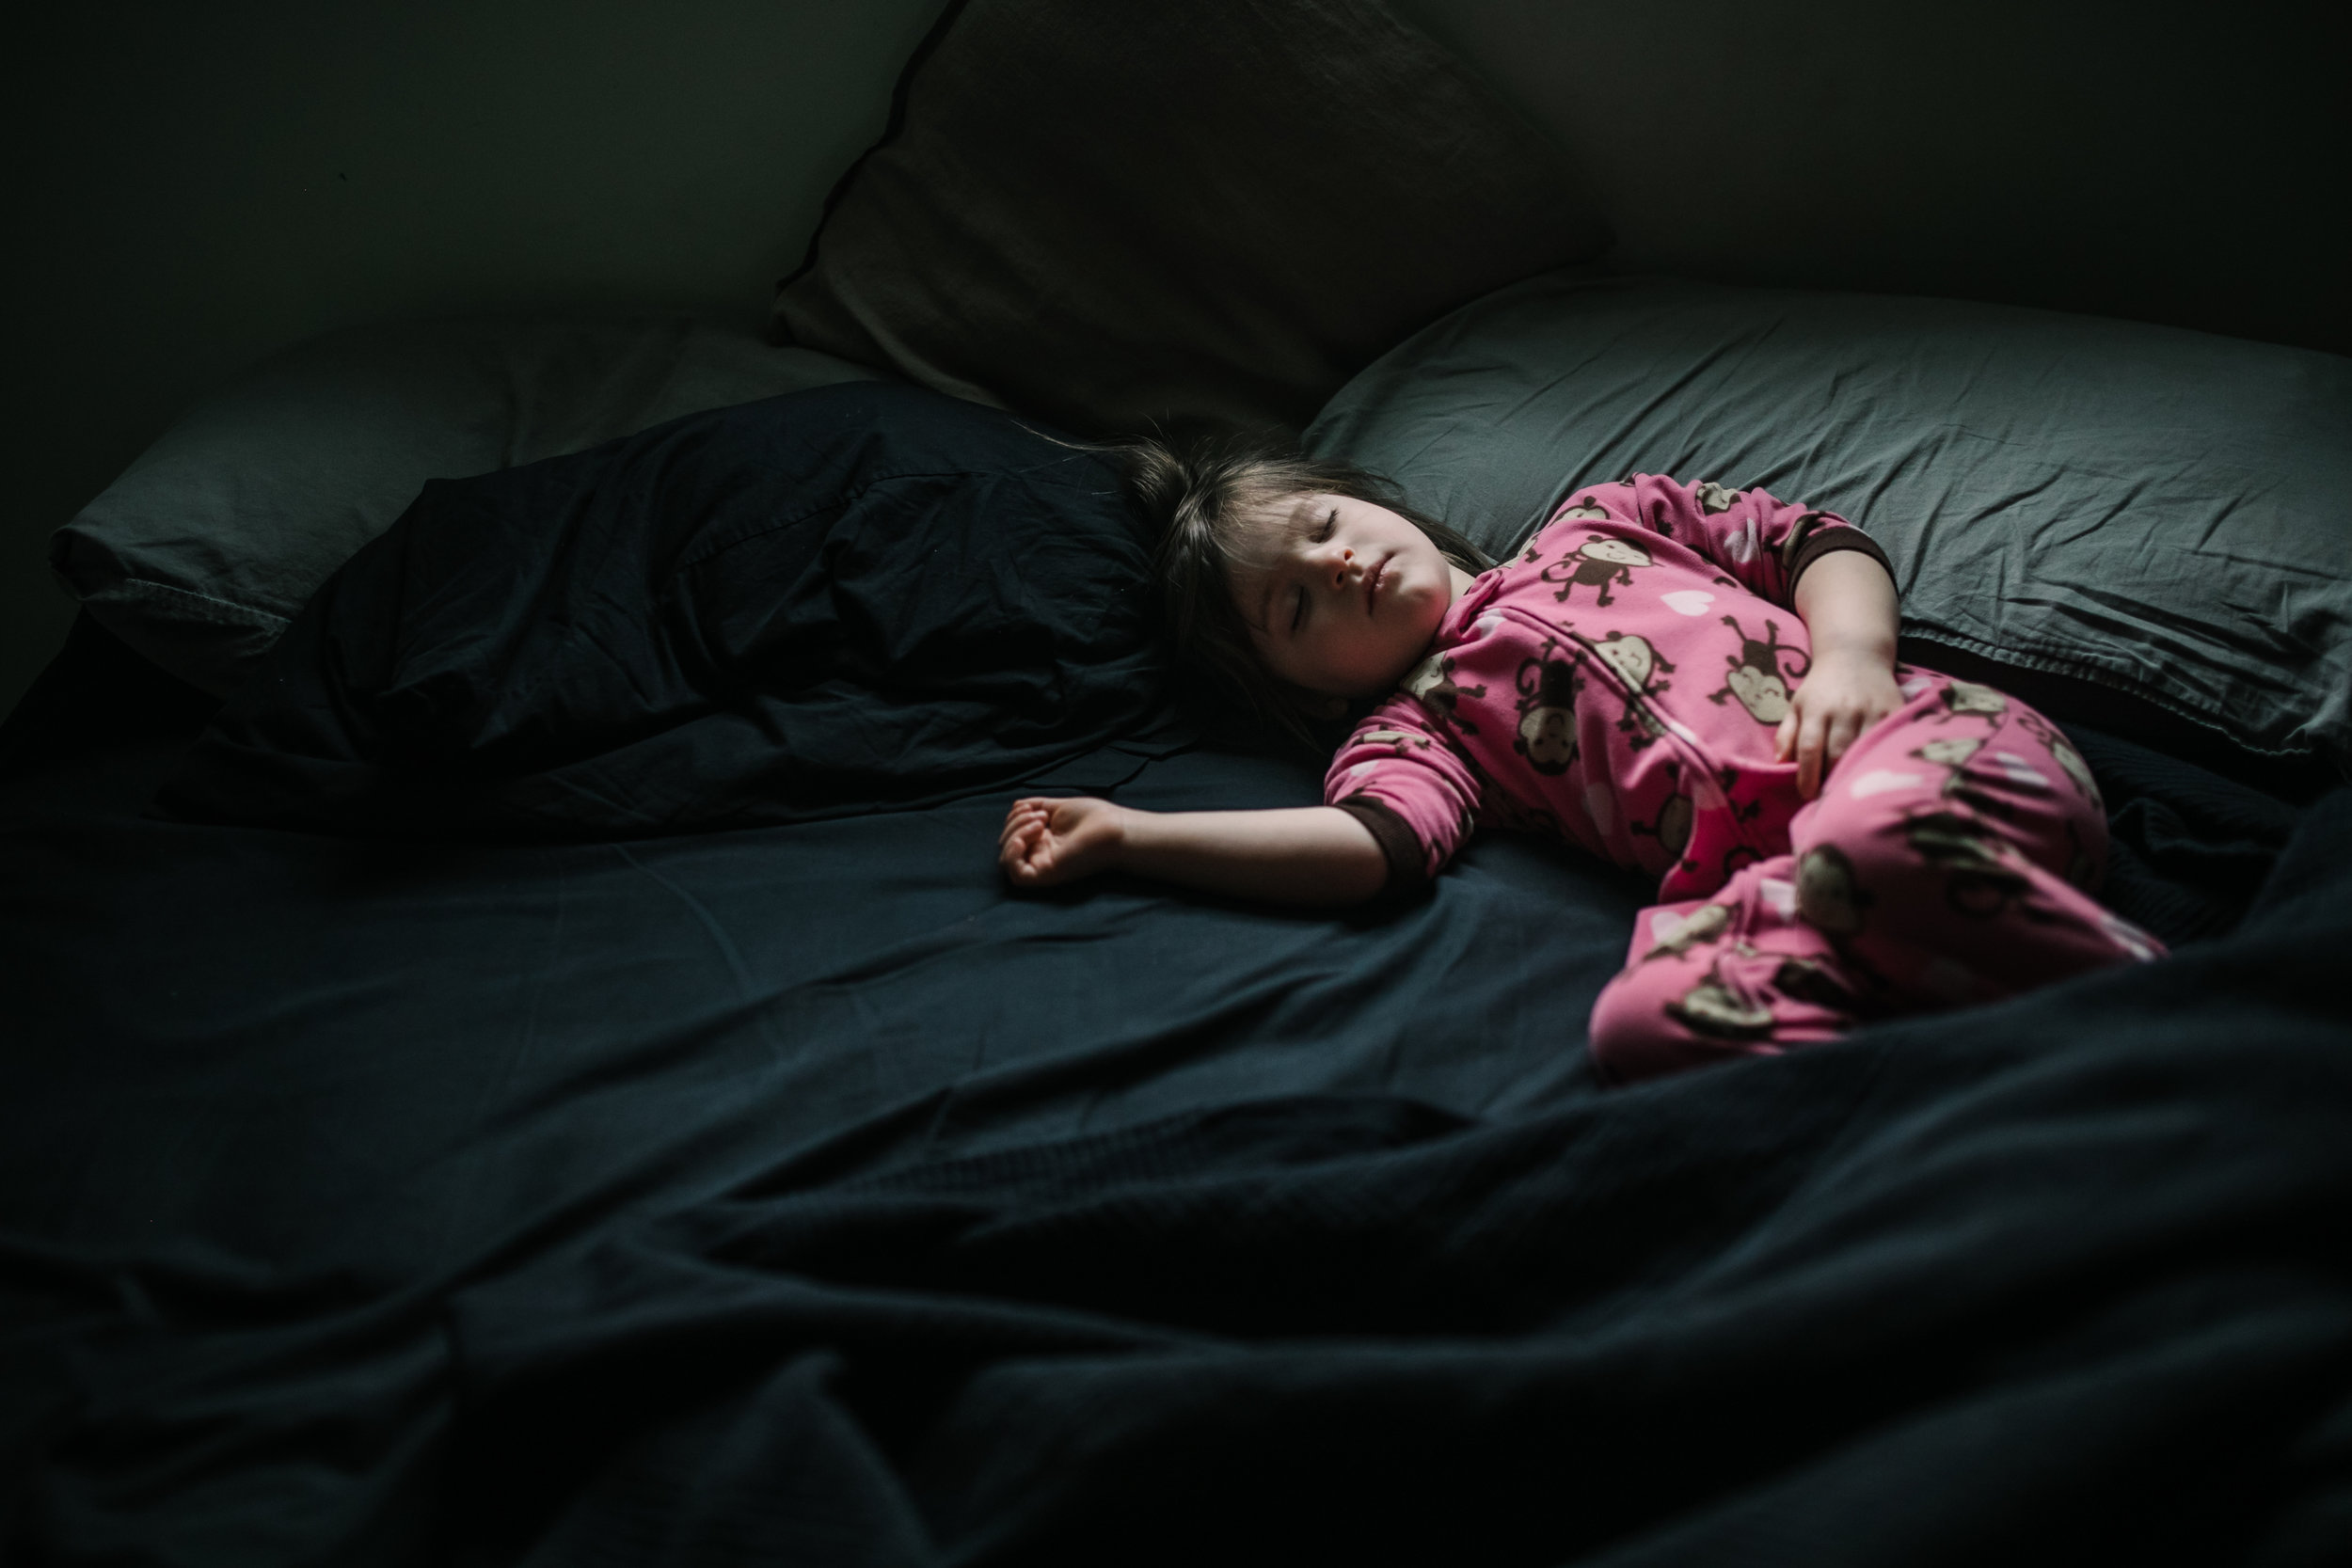 Girl sleeps peacefully in a bed